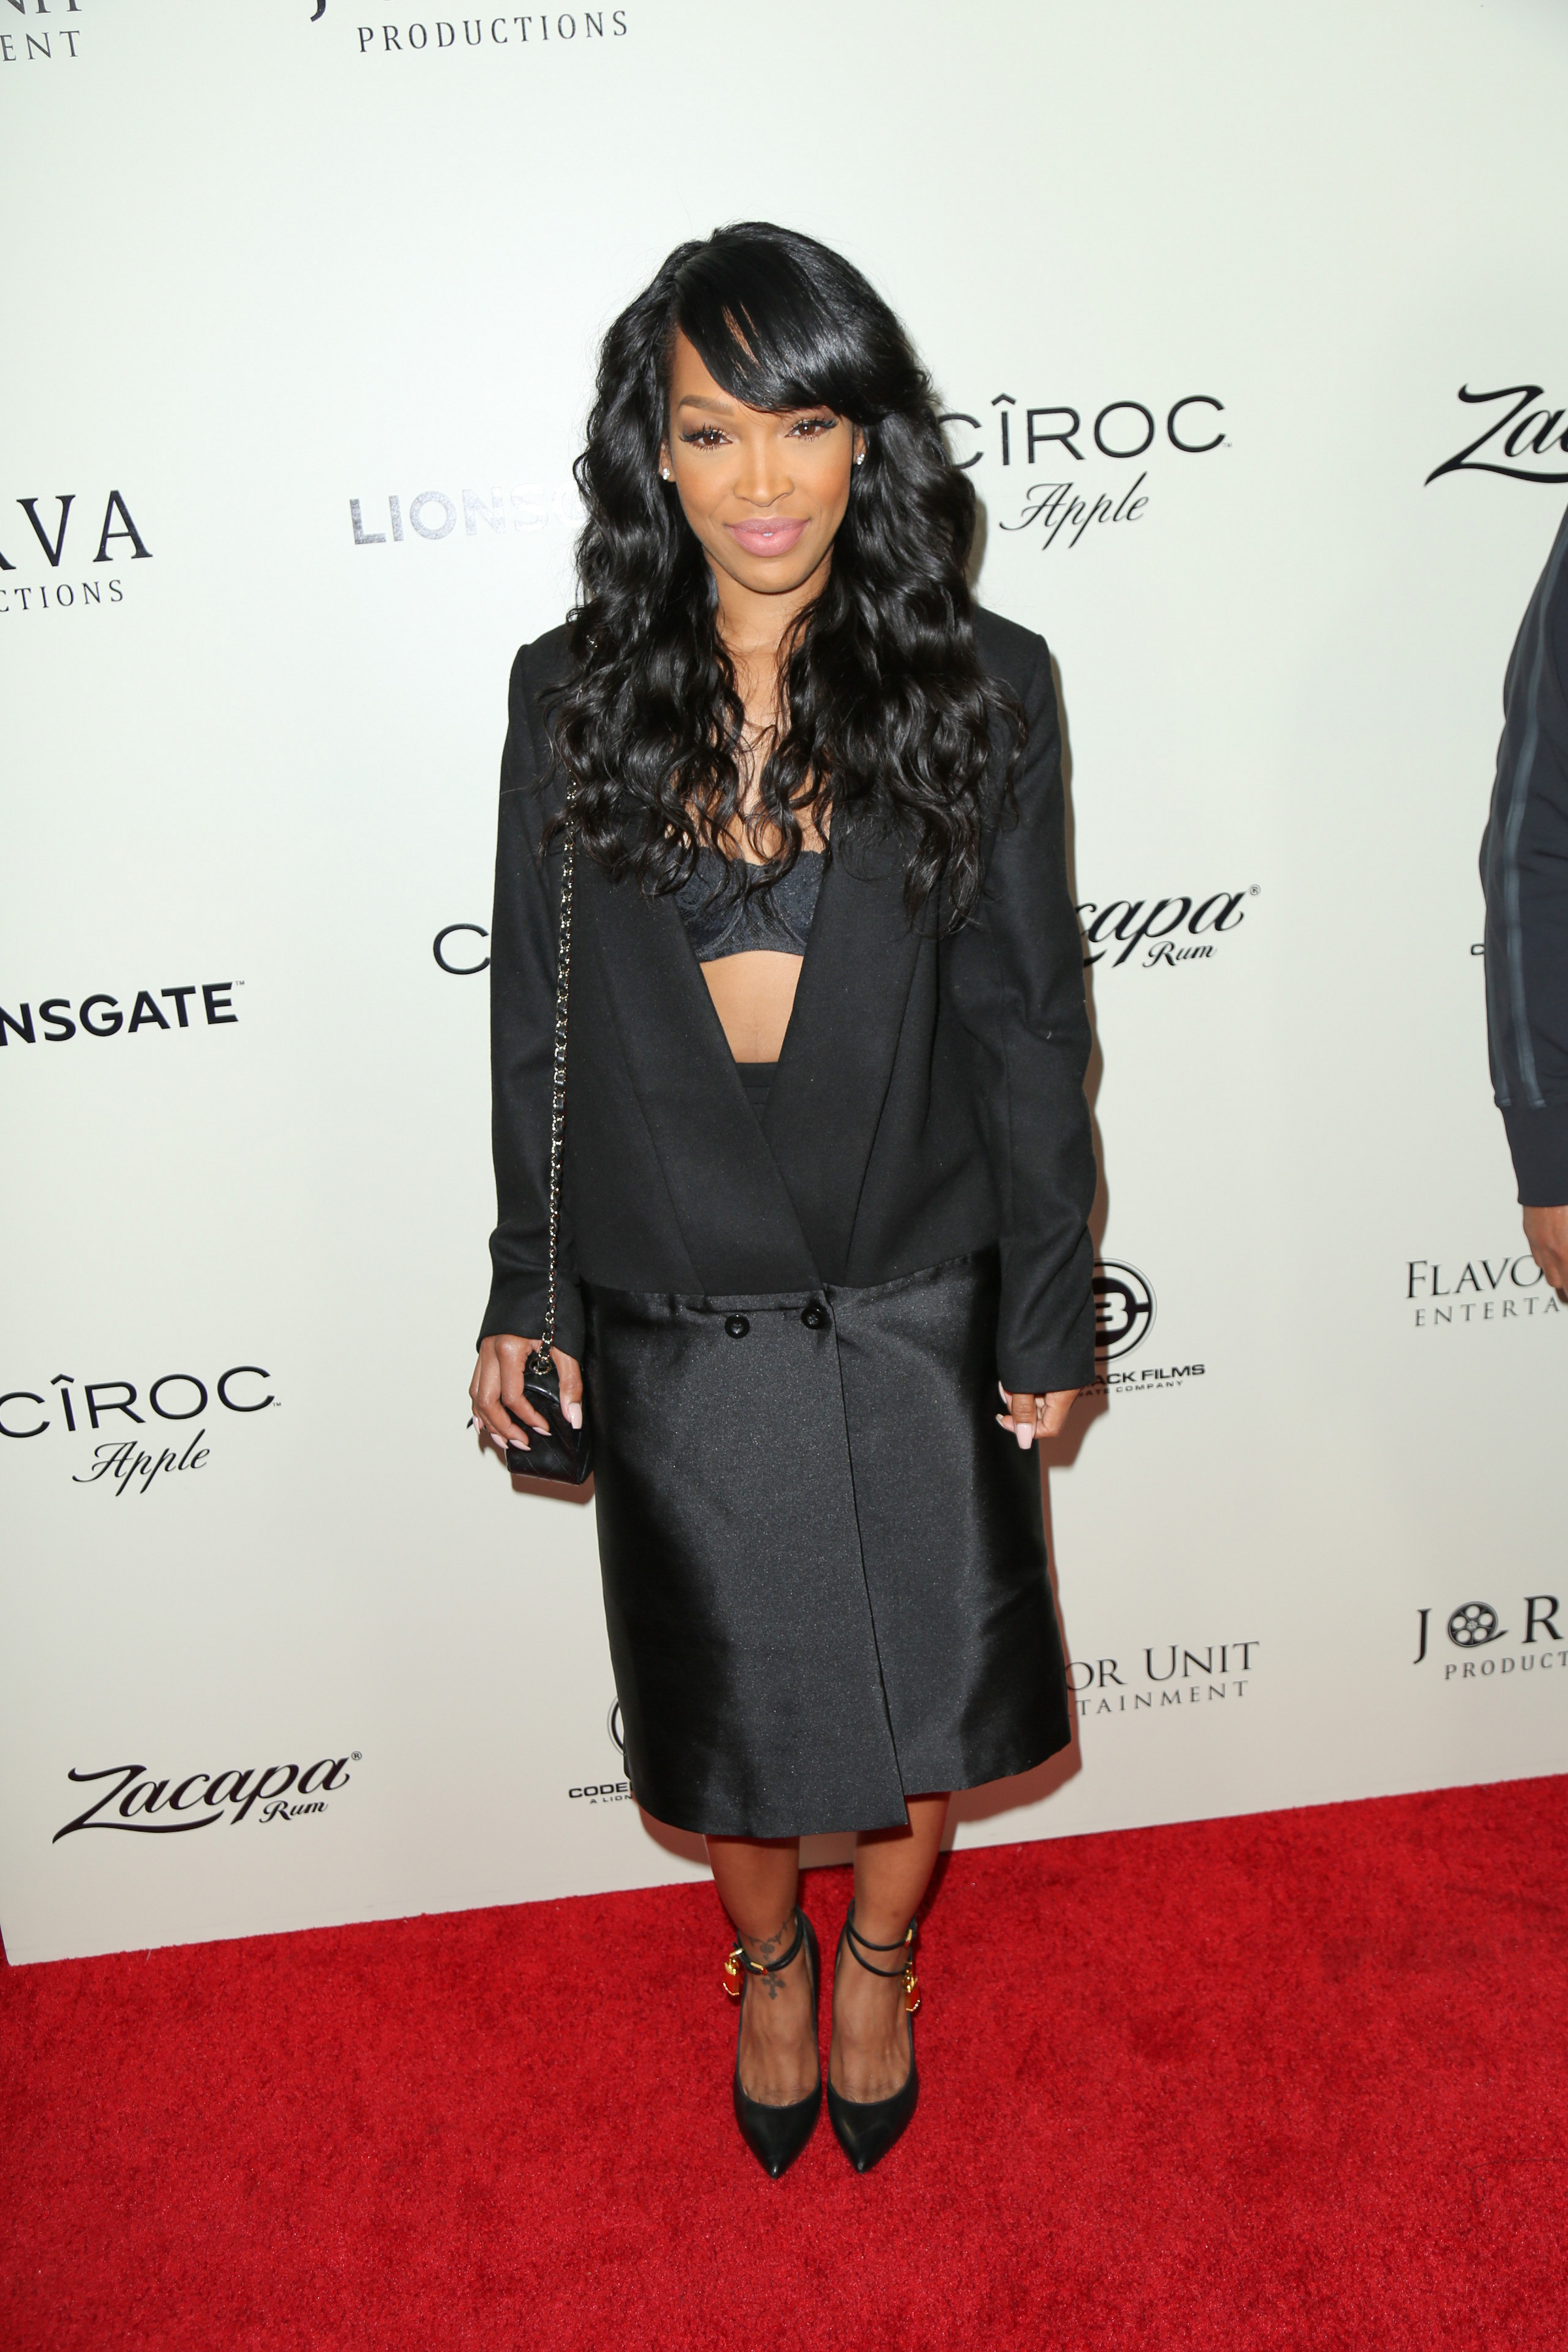 "03/07/2016 - Malika Haqq - ""The Perfect Match"" Los Angeles Premiere - Arrivals - ArcLight Hollywood Cinemas, 6360 Sunset Boulevard - Los Angeles, CA, USA - Keywords: Vertical, Person, People, Celebrity, Celebrities, Red Carpet Event, Arts Culture and Entertainment, Bestof, Topix, Comedy, Romance, Lionsgate Films, Lions Gate Films, Jorva Entertainment Productions, California Orientation: Portrait - False - Photo Credit: Guillermo Proano / PR Photos - Contact (1-866-551-7827) - Portrait"